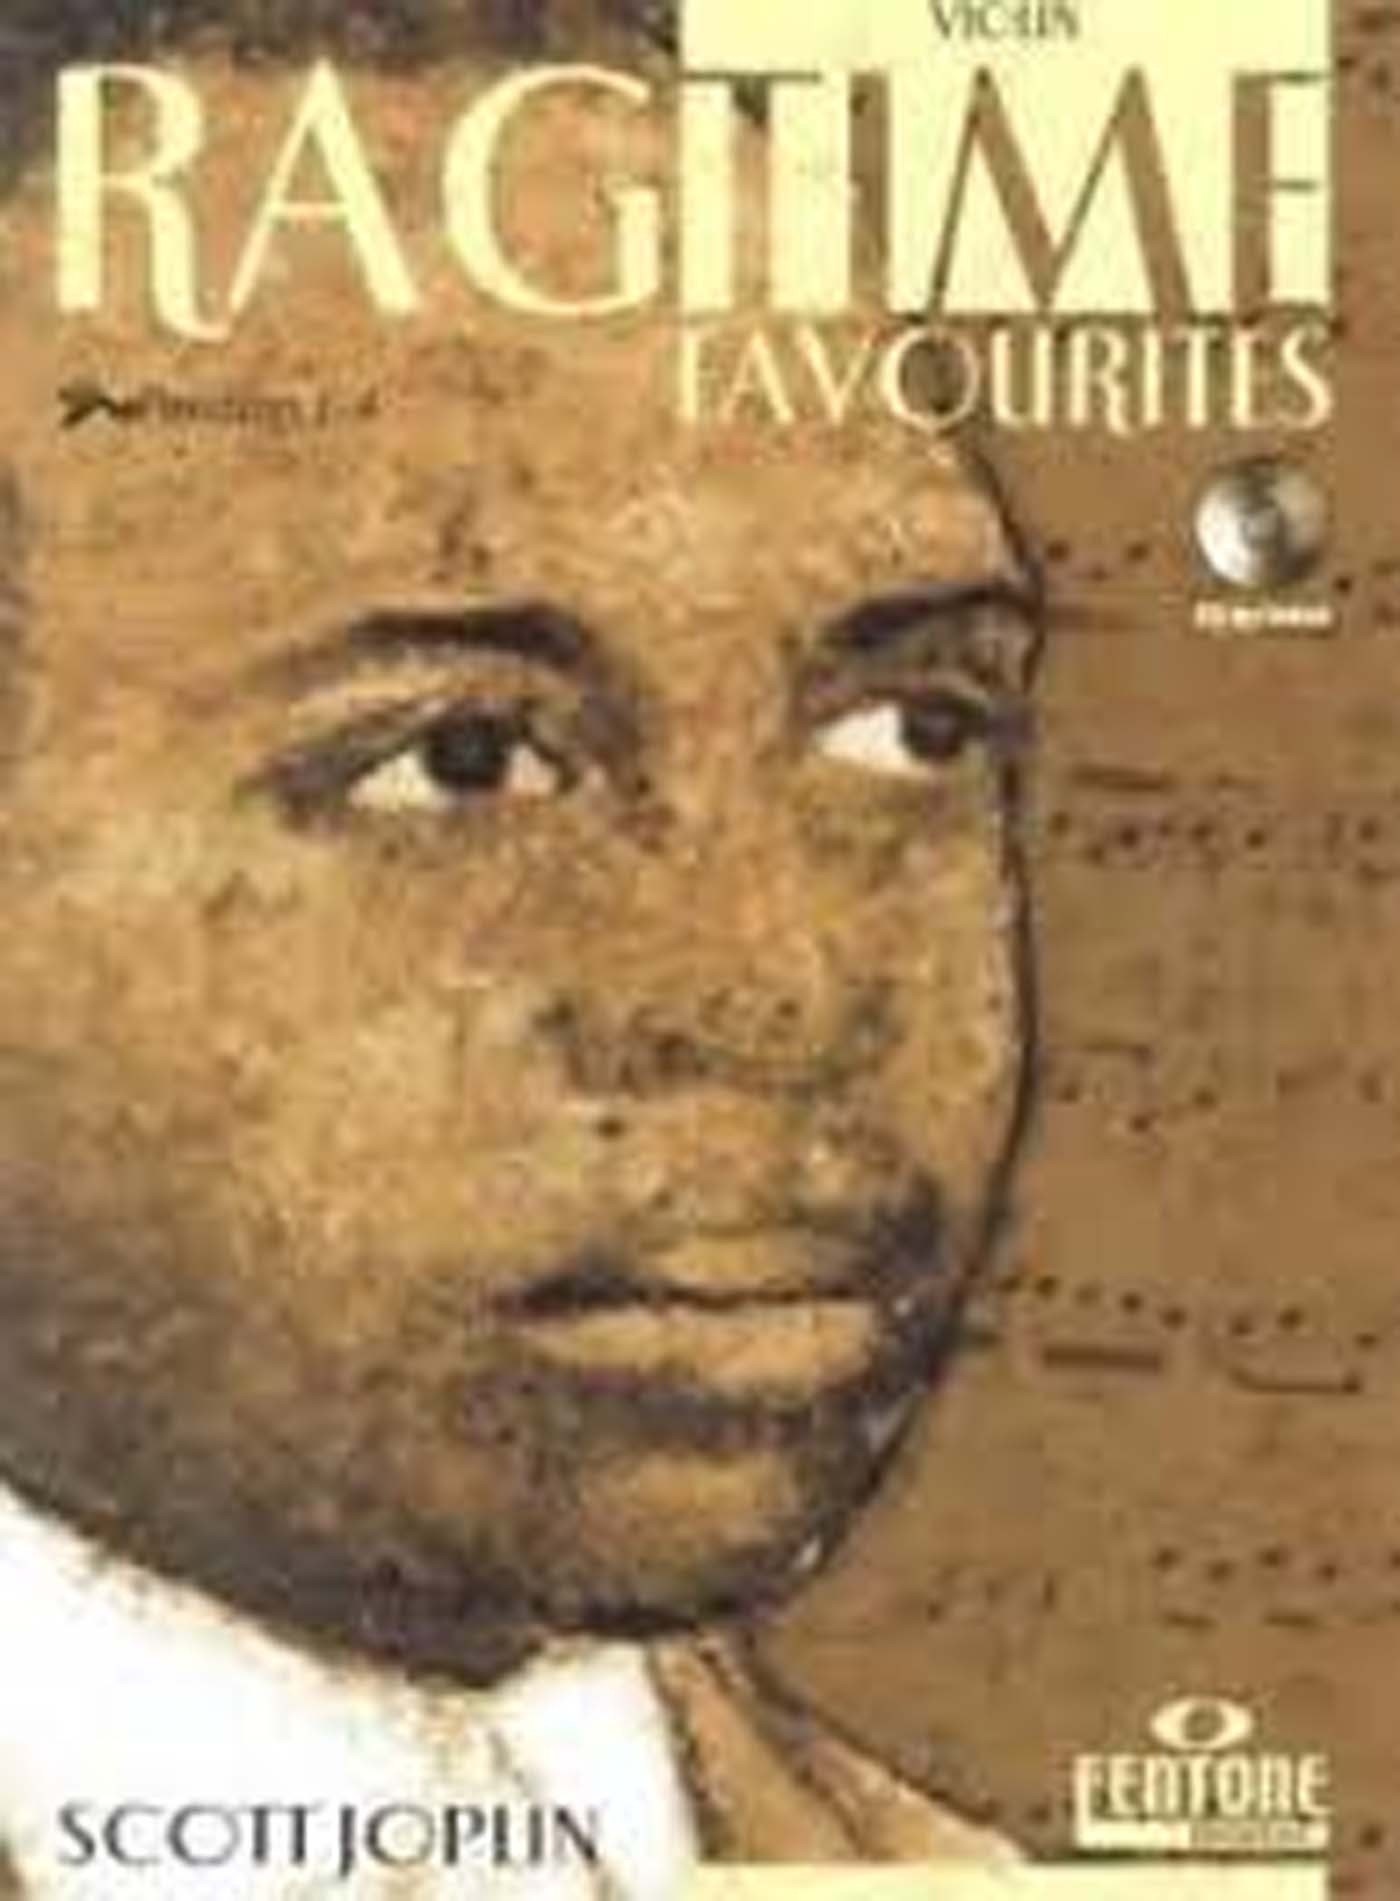 Ragtime Favourites Scott Joplin Book & CD Violin Position 1-4 The Entertainer S168